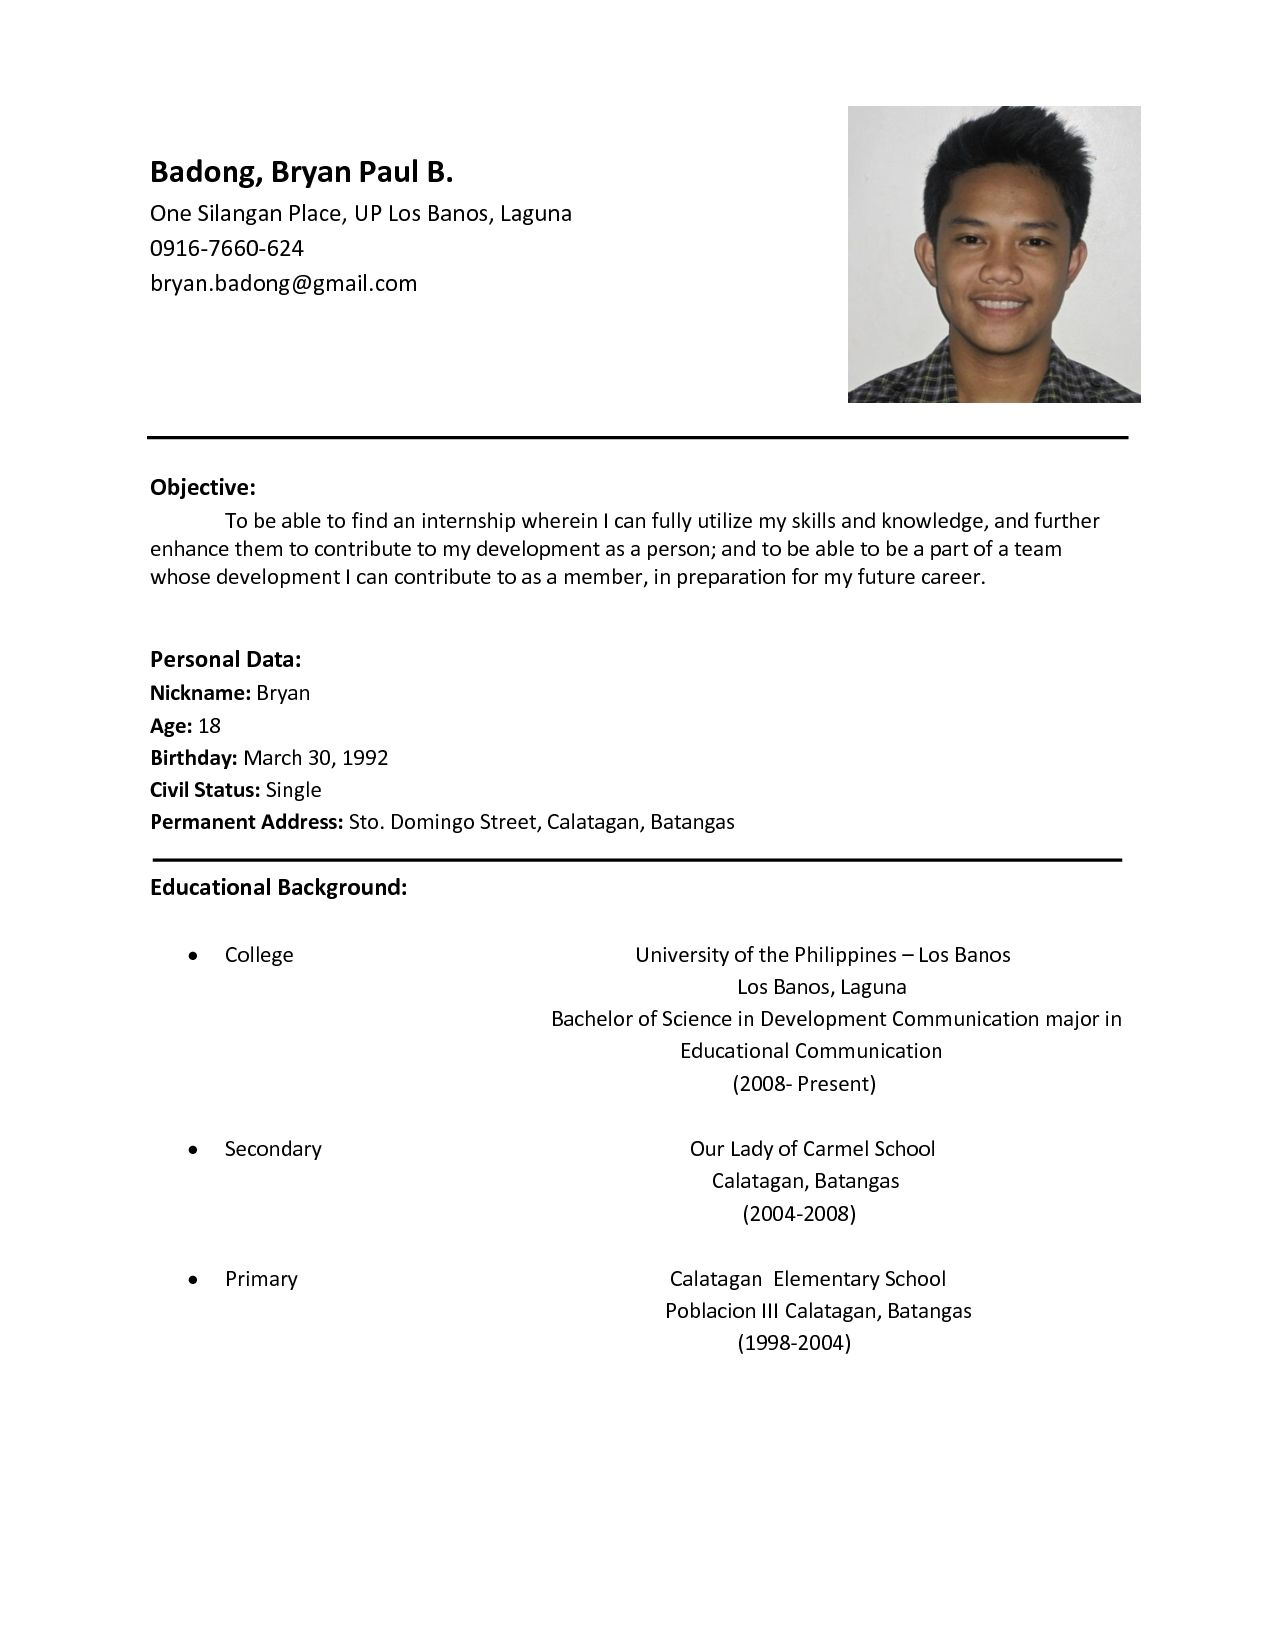 sample resume uk cal by bernard maclaverty essay quotes apa thesis ...